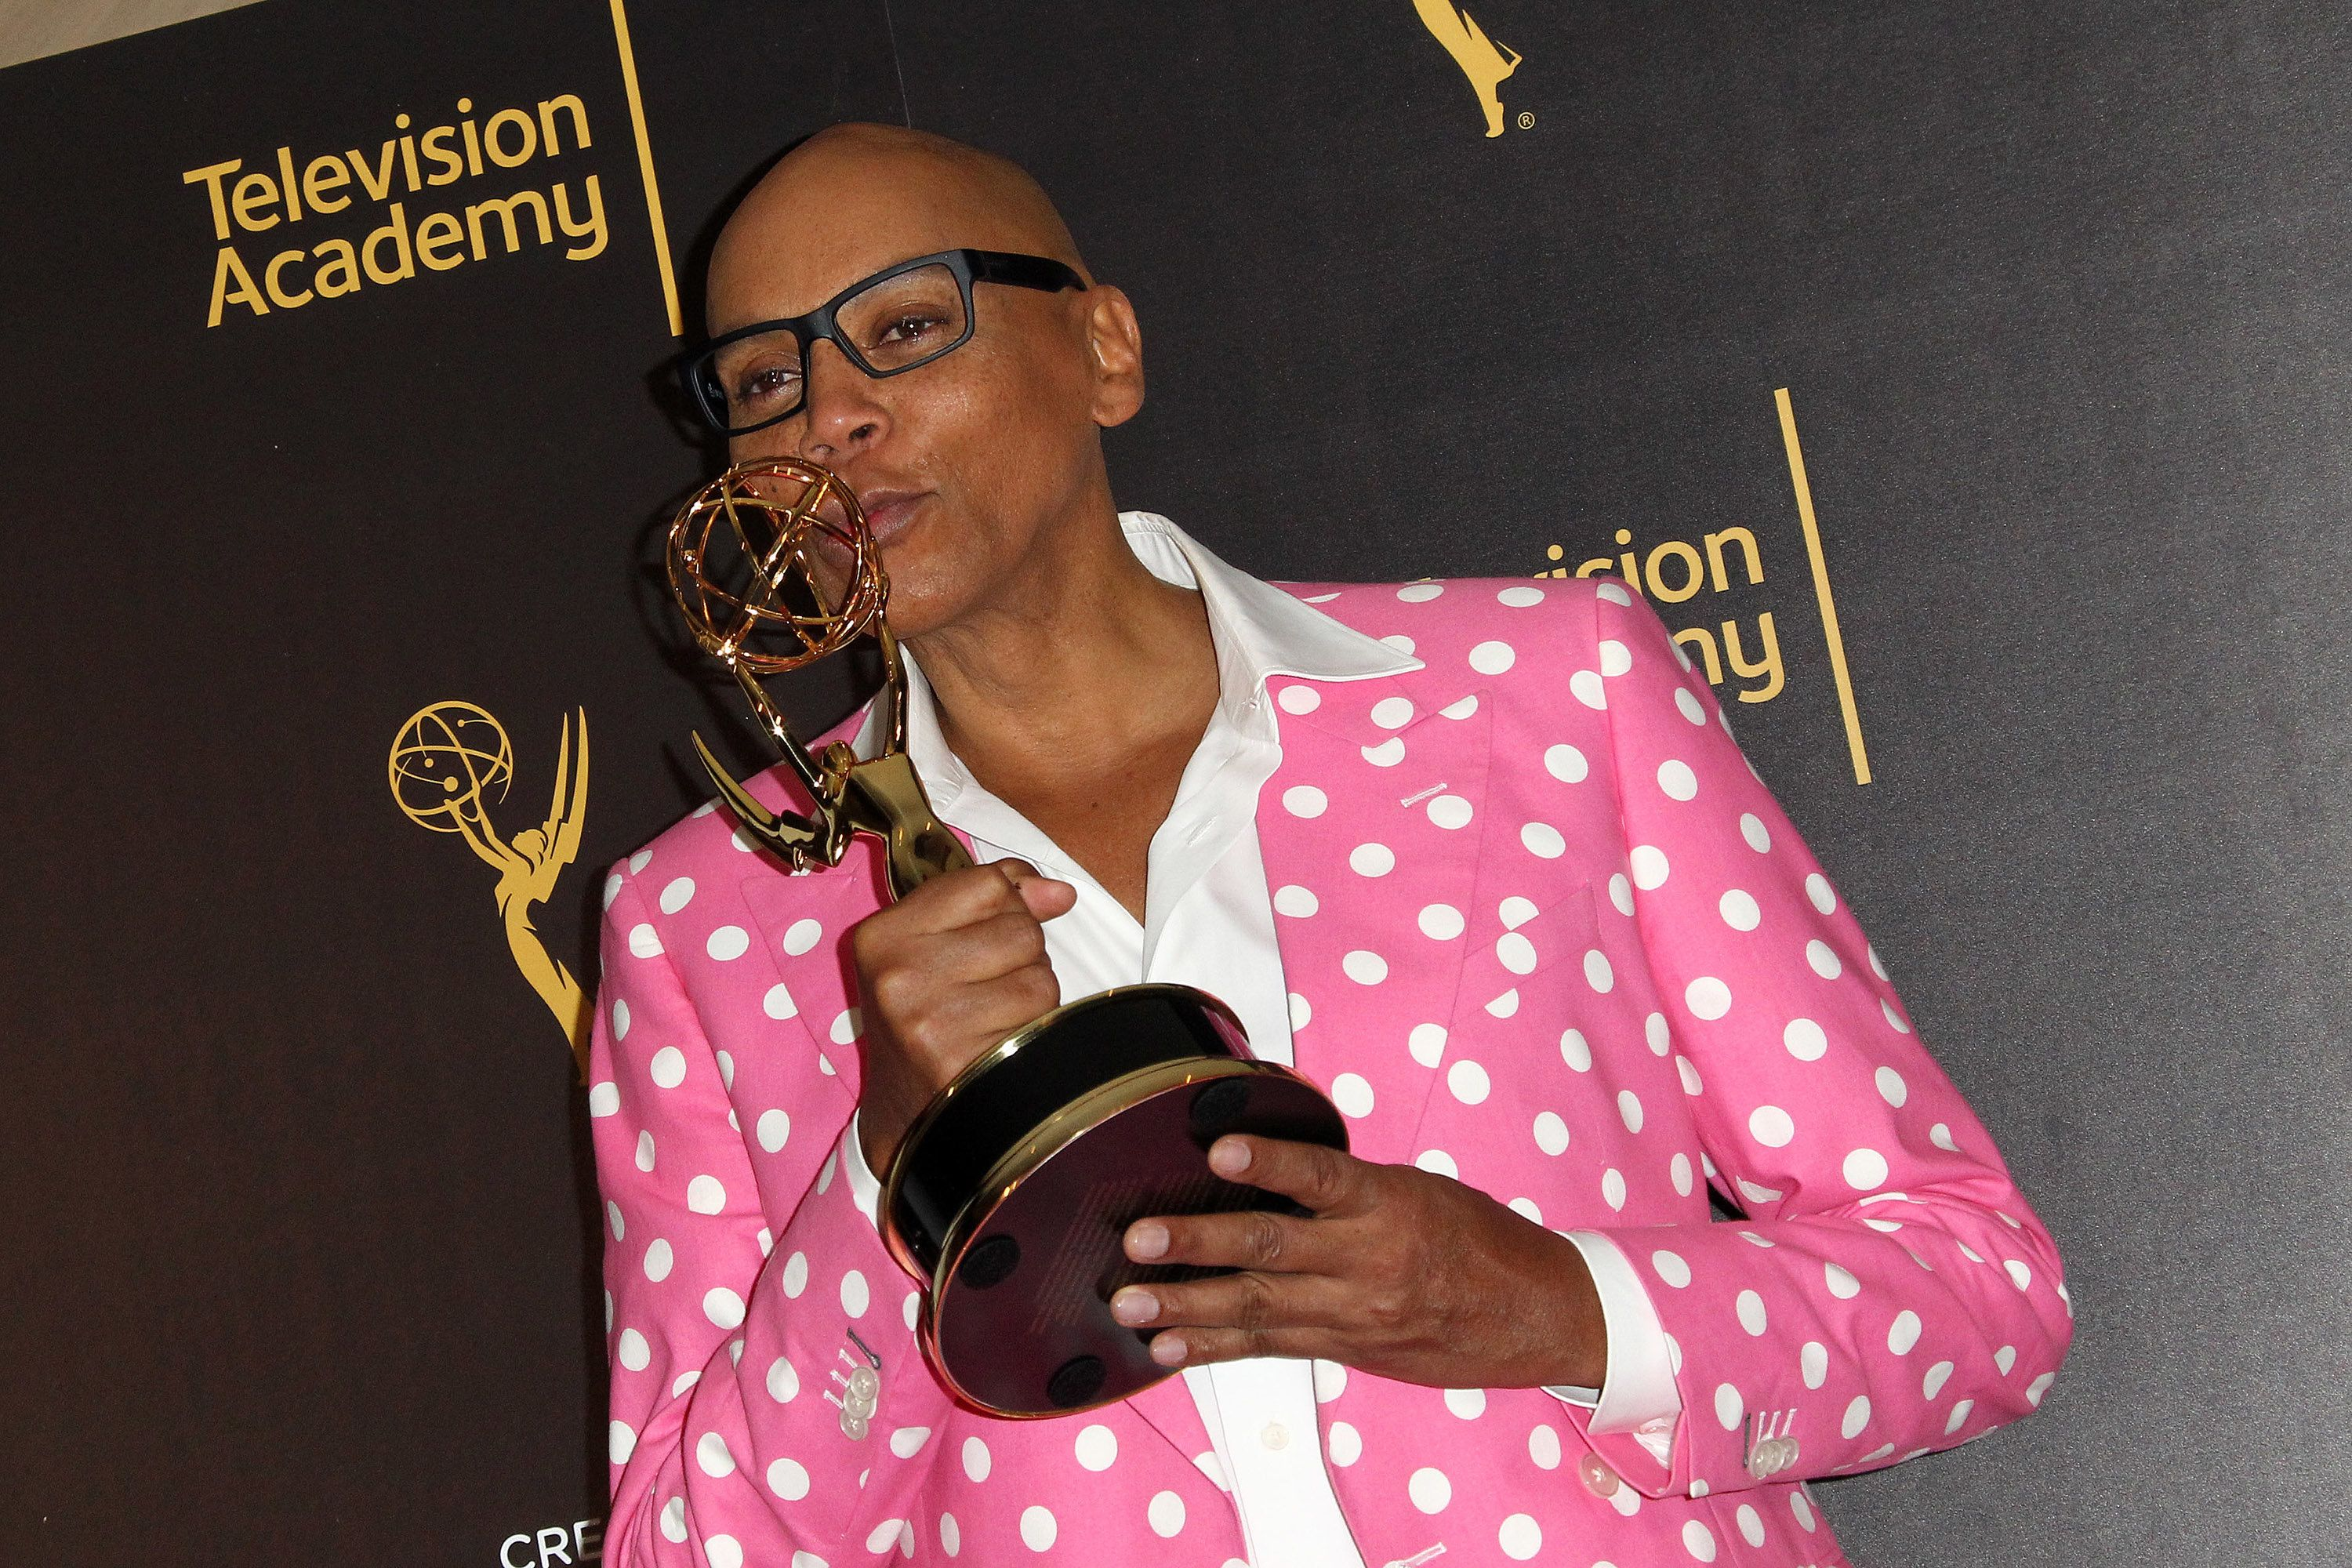 RuPaul wins second Emmy for Outstanding Reality Host